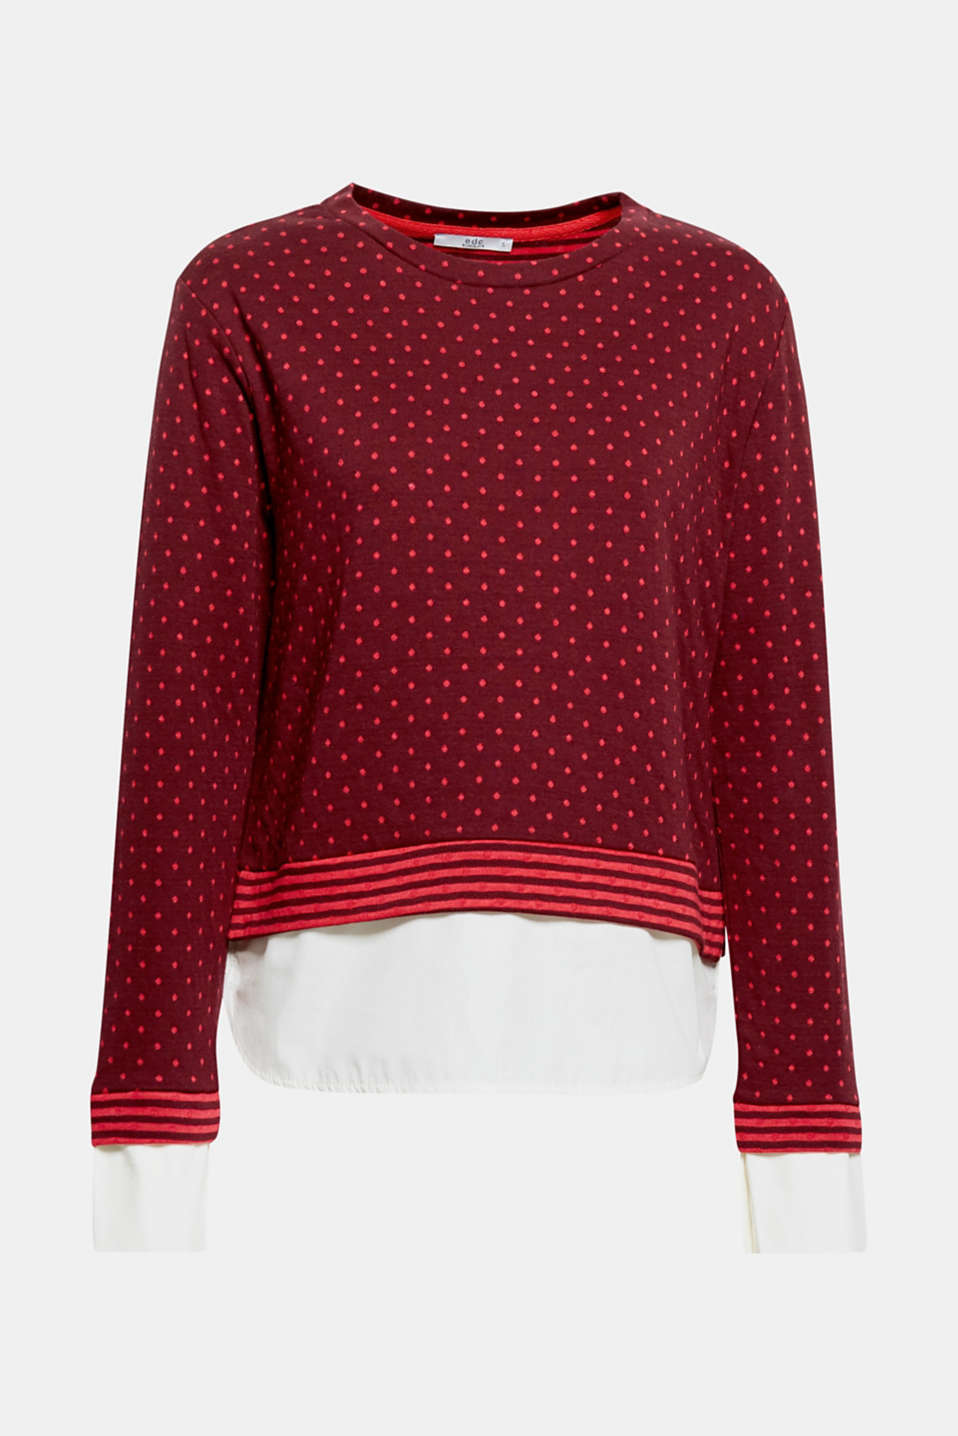 Slip it on and be sensationally styled: an absolute no-brainer with this spotty, 2-in-1 sweatshirt!